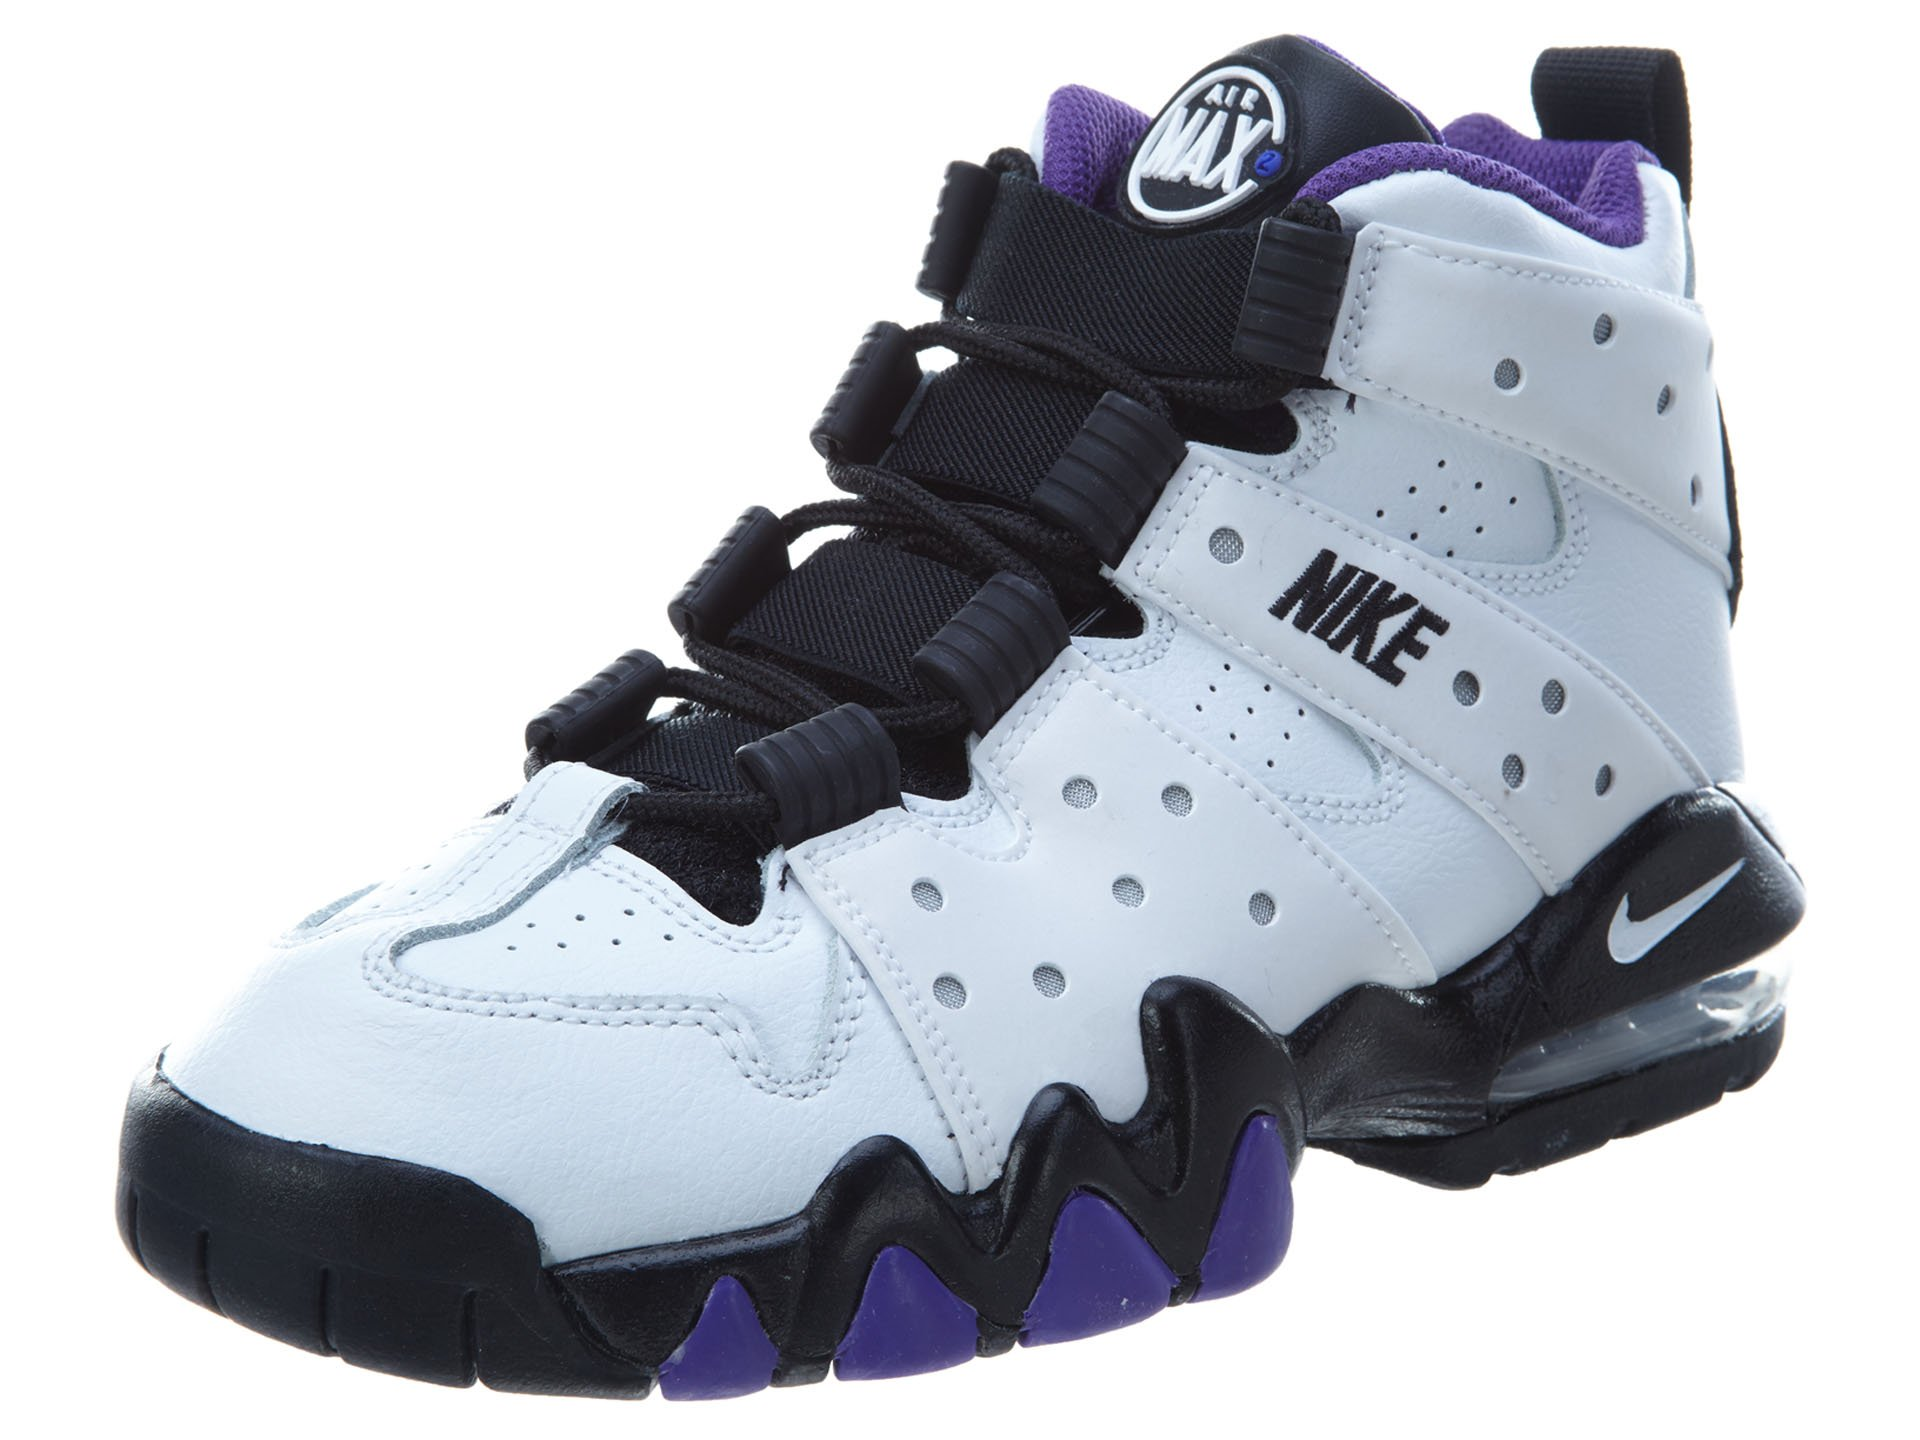 Nike CB 94 Youth US 4.5 White Sneakers by NIKE